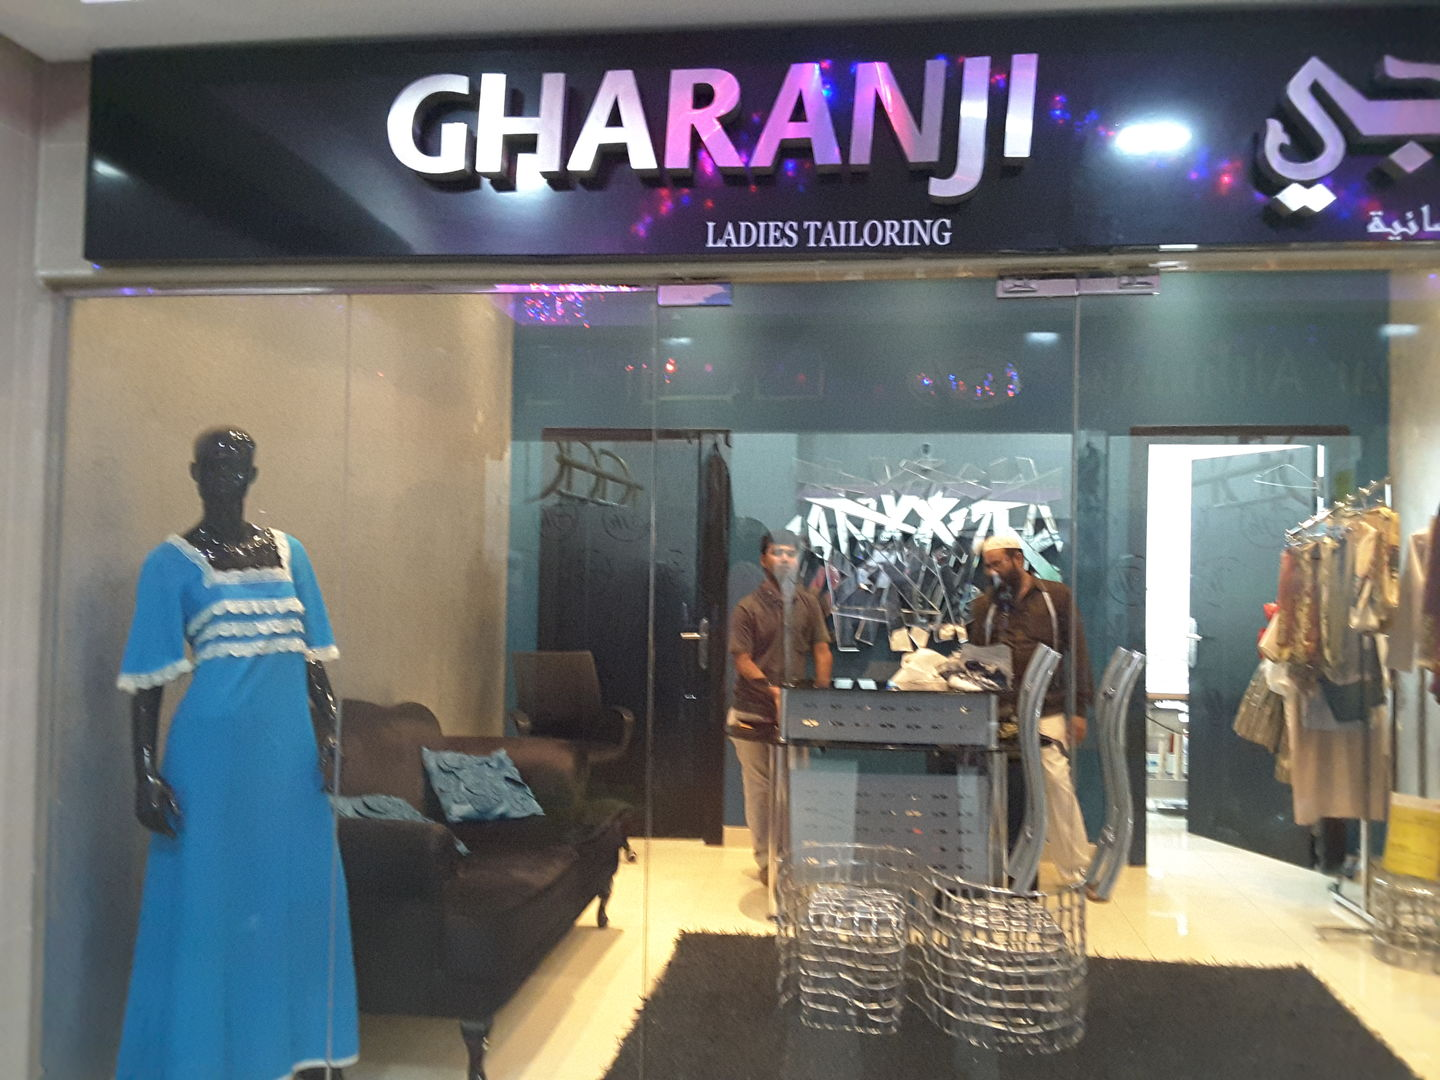 HiDubai-business-gharanji-ladies-tailoring-shopping-apparel-mirdif-dubai-2